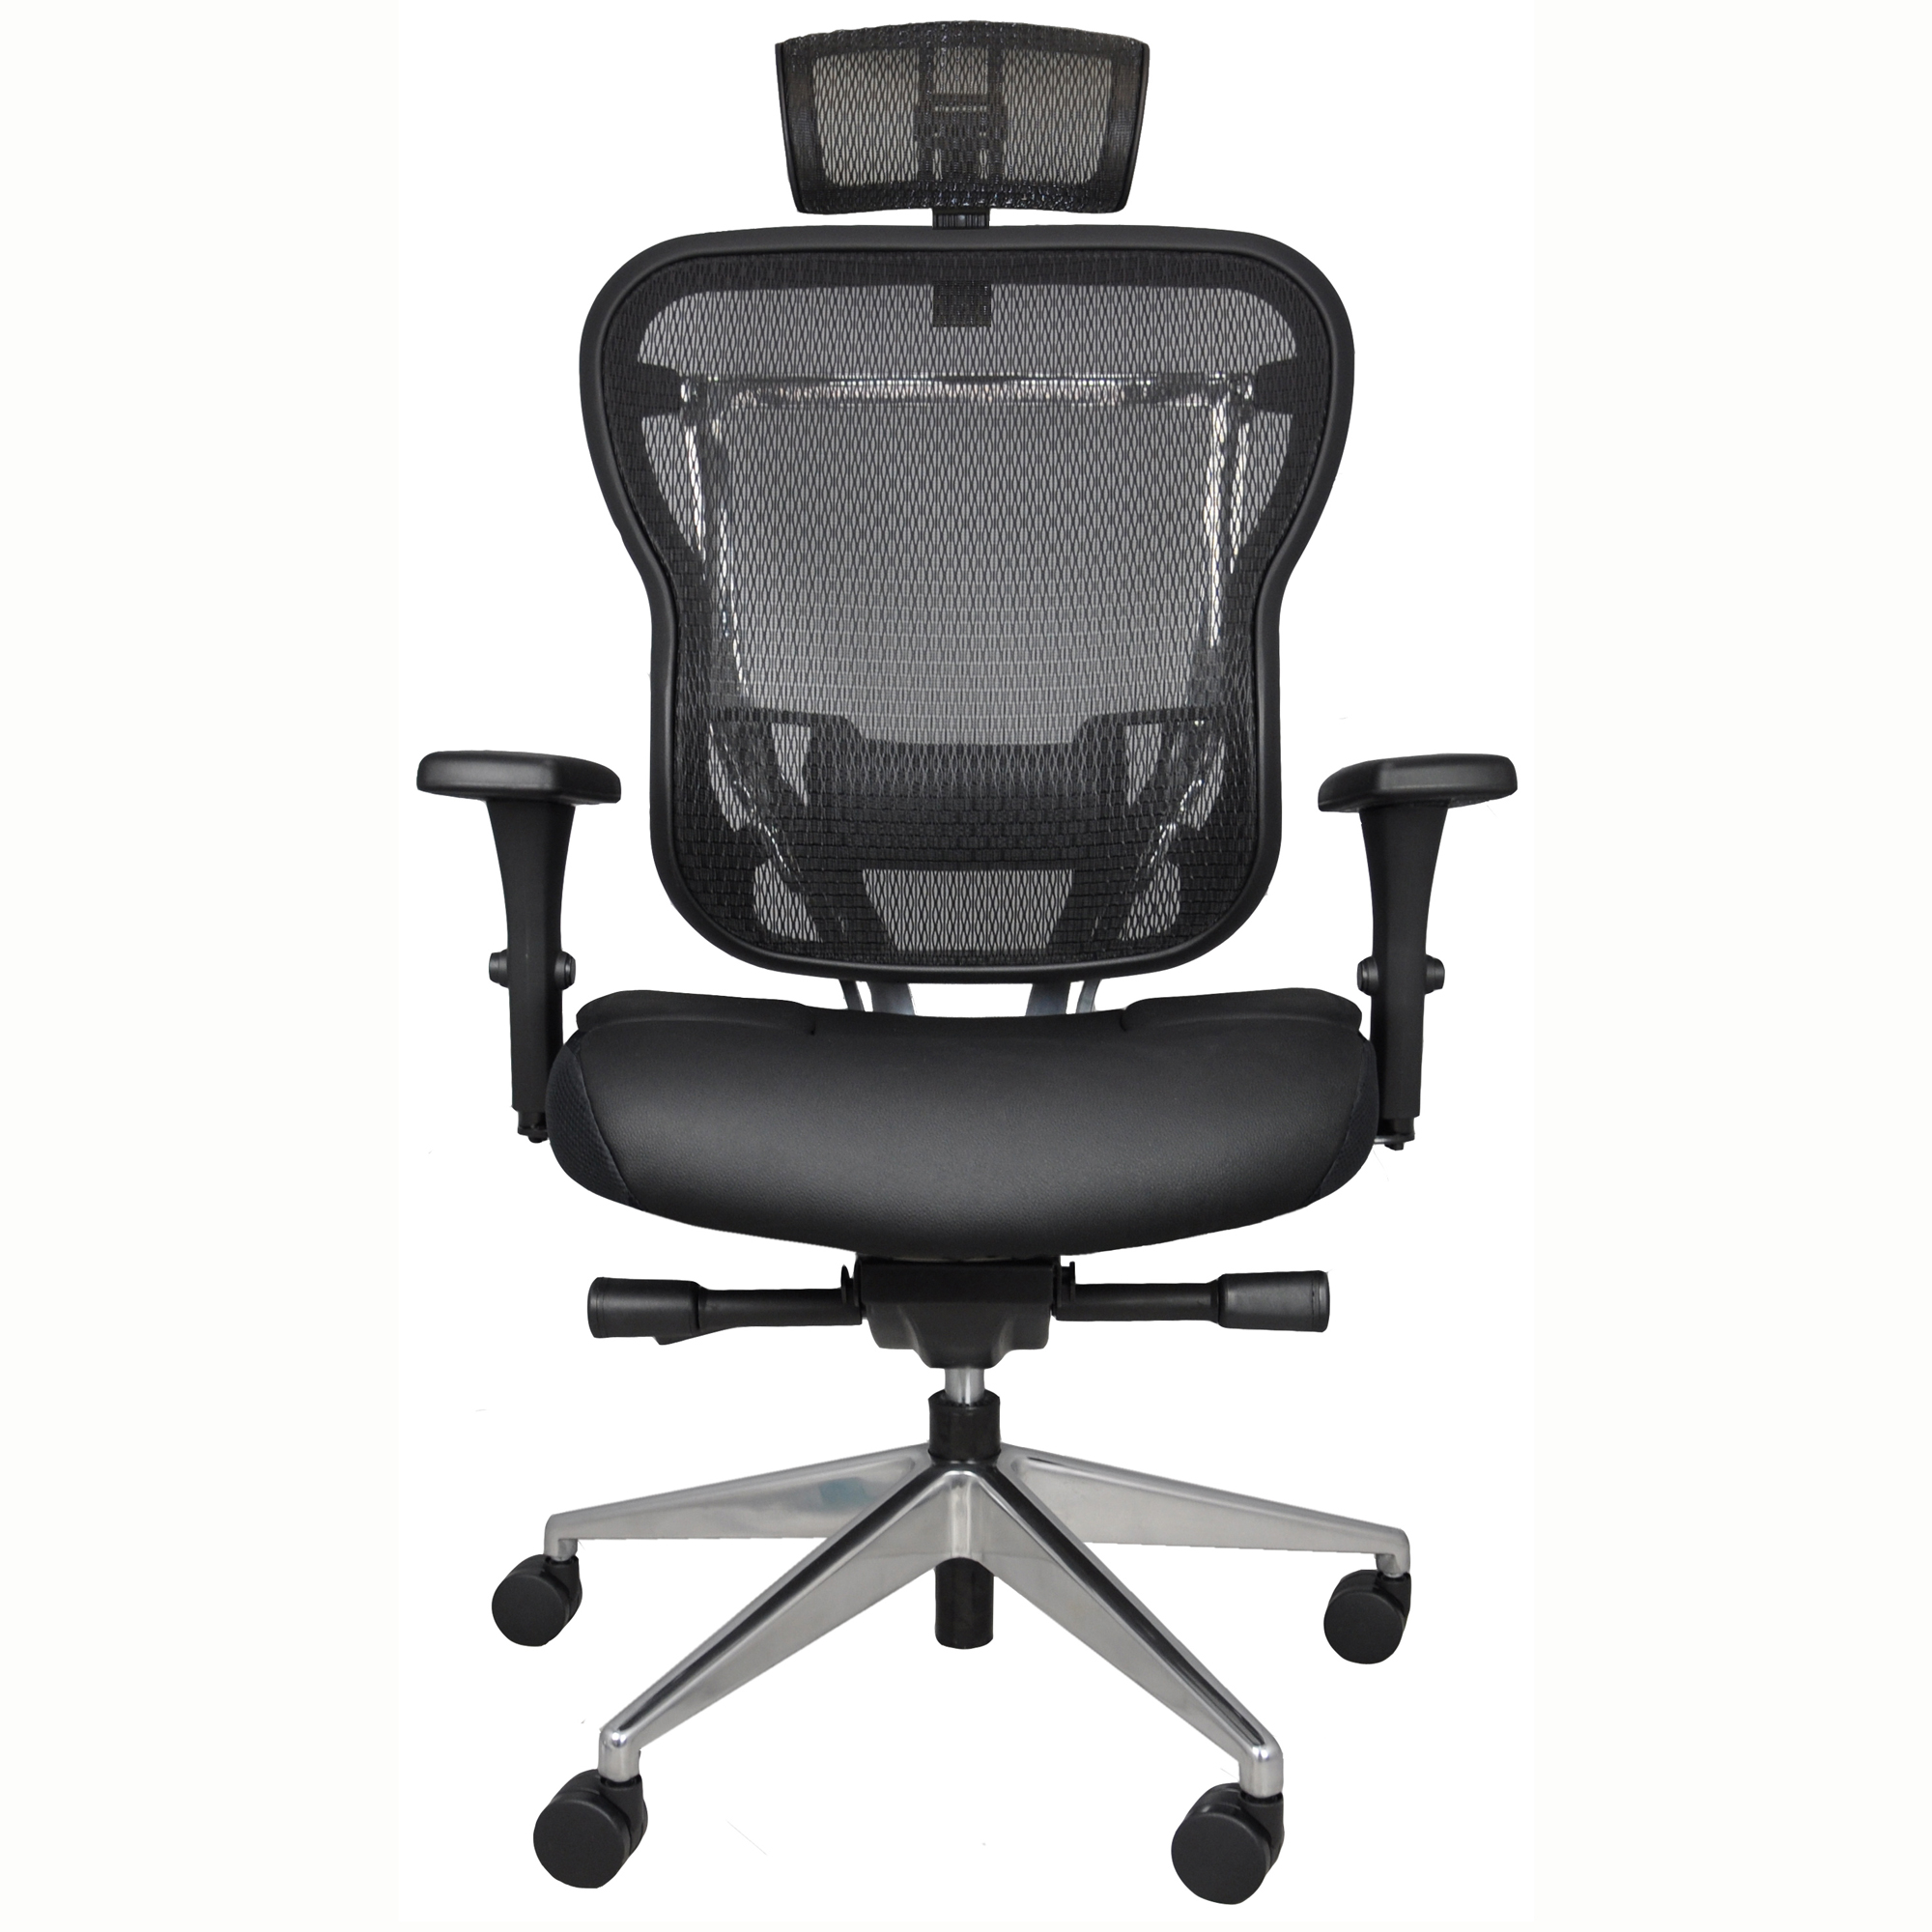 Rika Home Office Chair with Mesh Back and Headrest